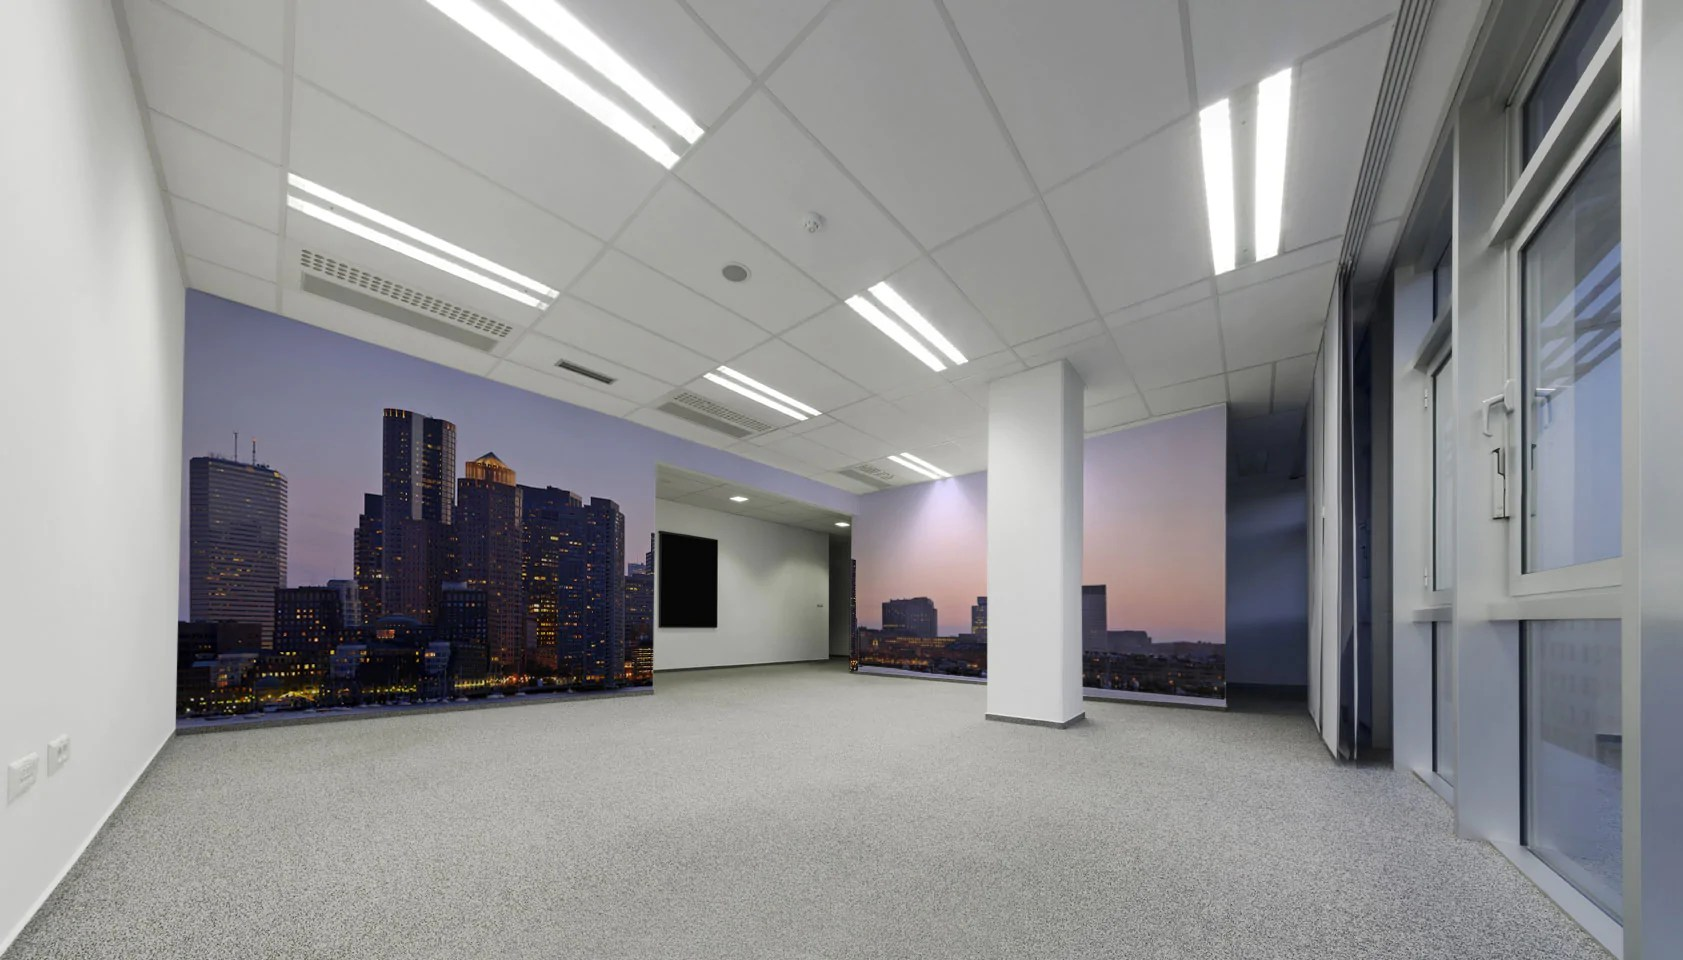 Wall Mural Ideas Corporate Offices Eazywallz